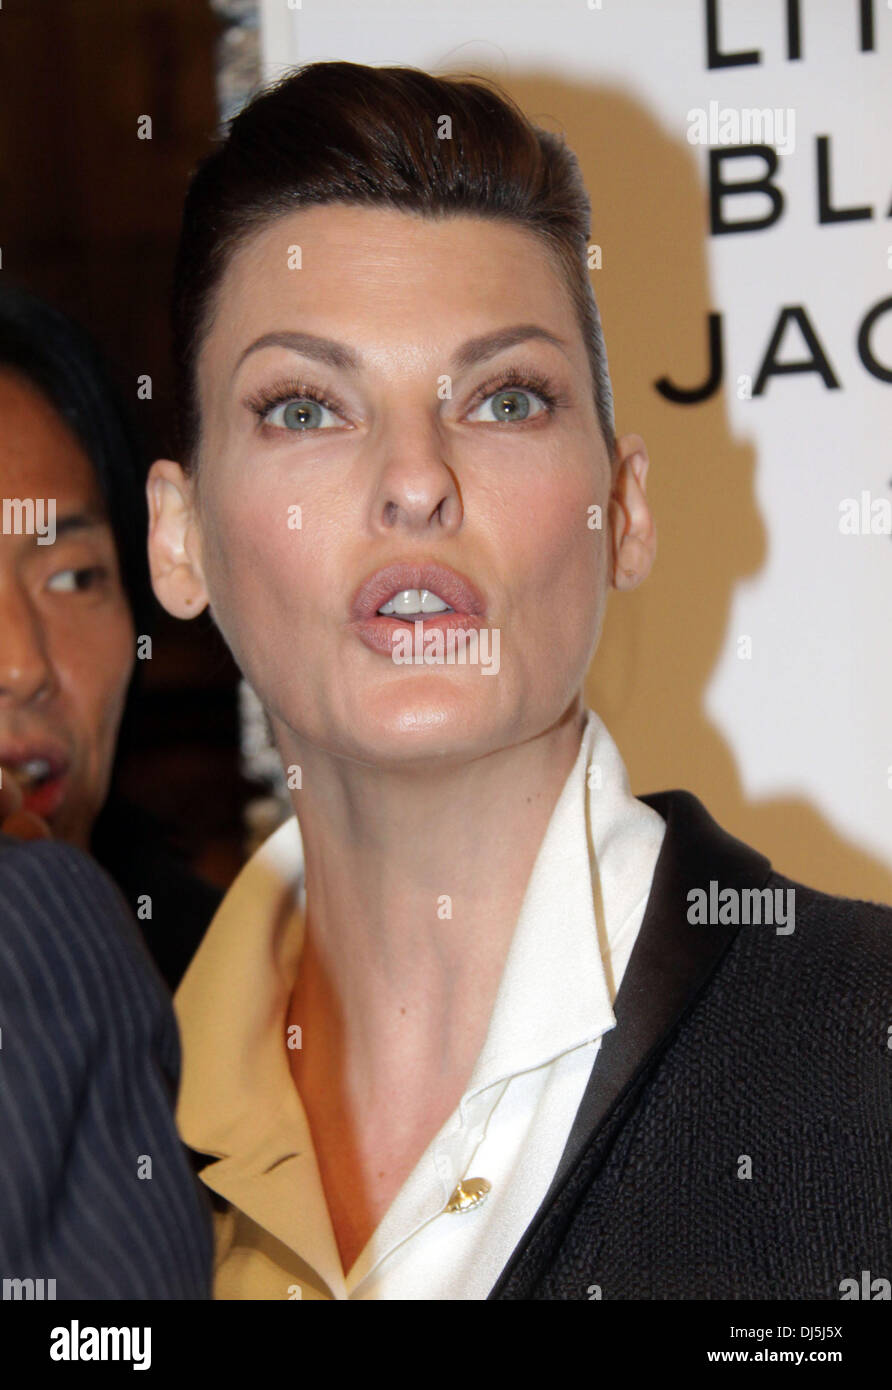 a79f23b16d6 Linda Evangelista Chanel's, The Little Black Jacket Event at the Swiss  Institute - arrivals Featuring: Linda Evangelista Where: New York City,  United States ...